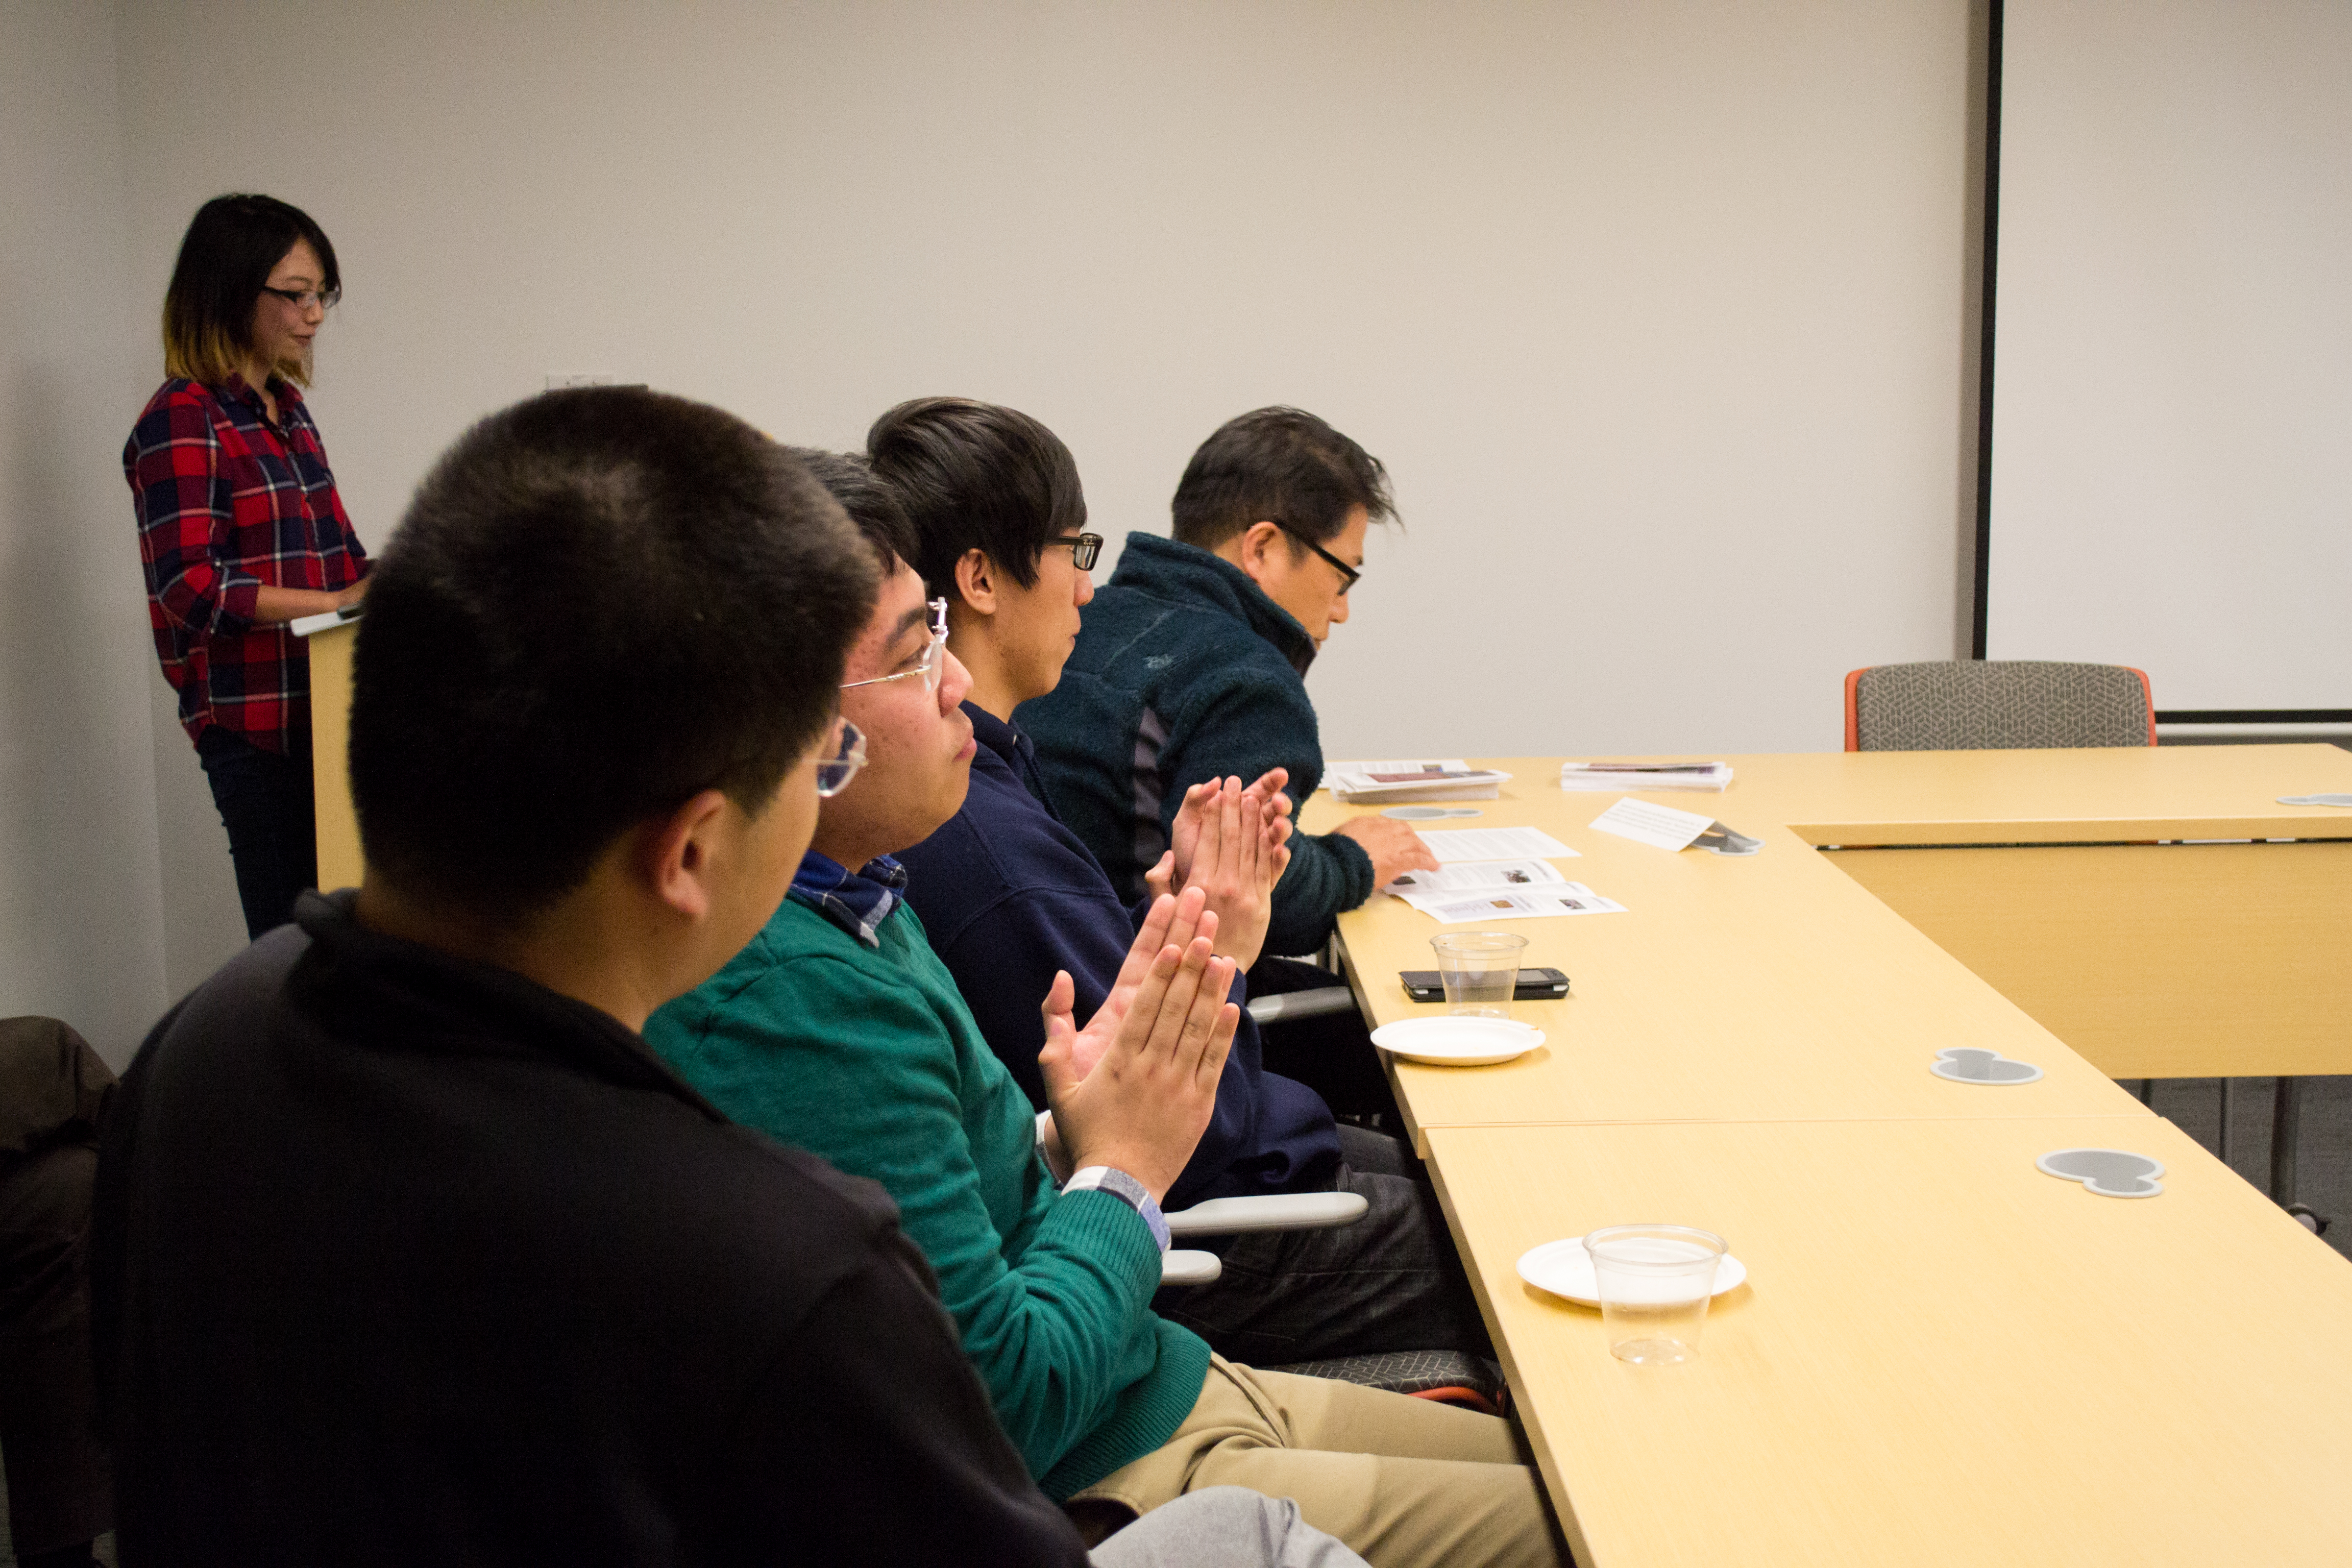 Students and faculty of Lehigh University attend the Asian Studies Spring Social presentation